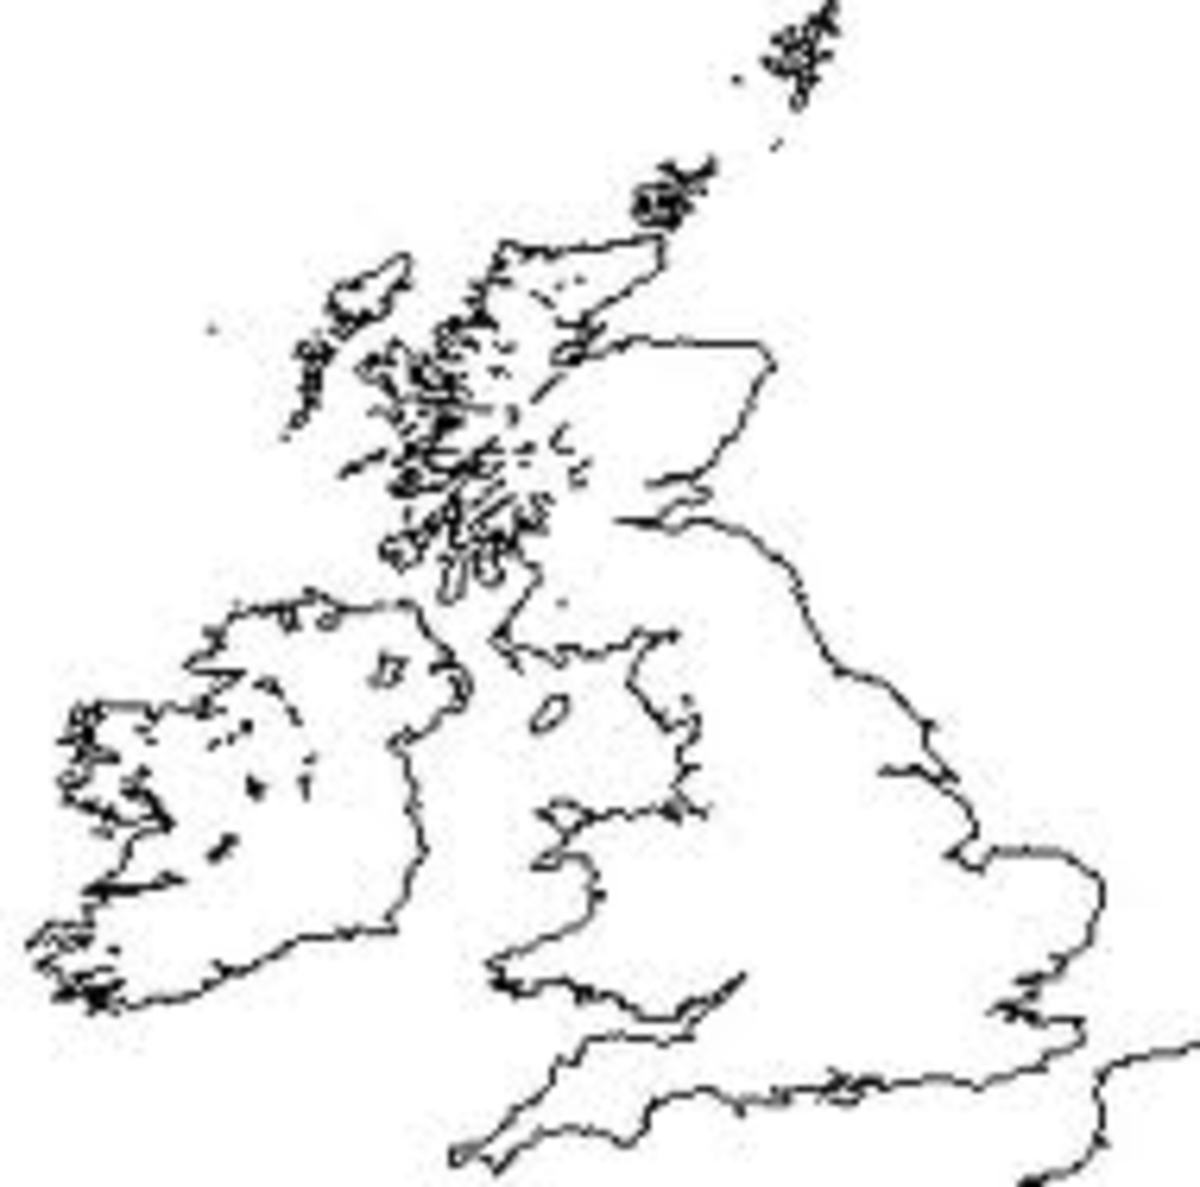 british isles map blank Geography Lesson Plans The British Isles Hubpages british isles map blank